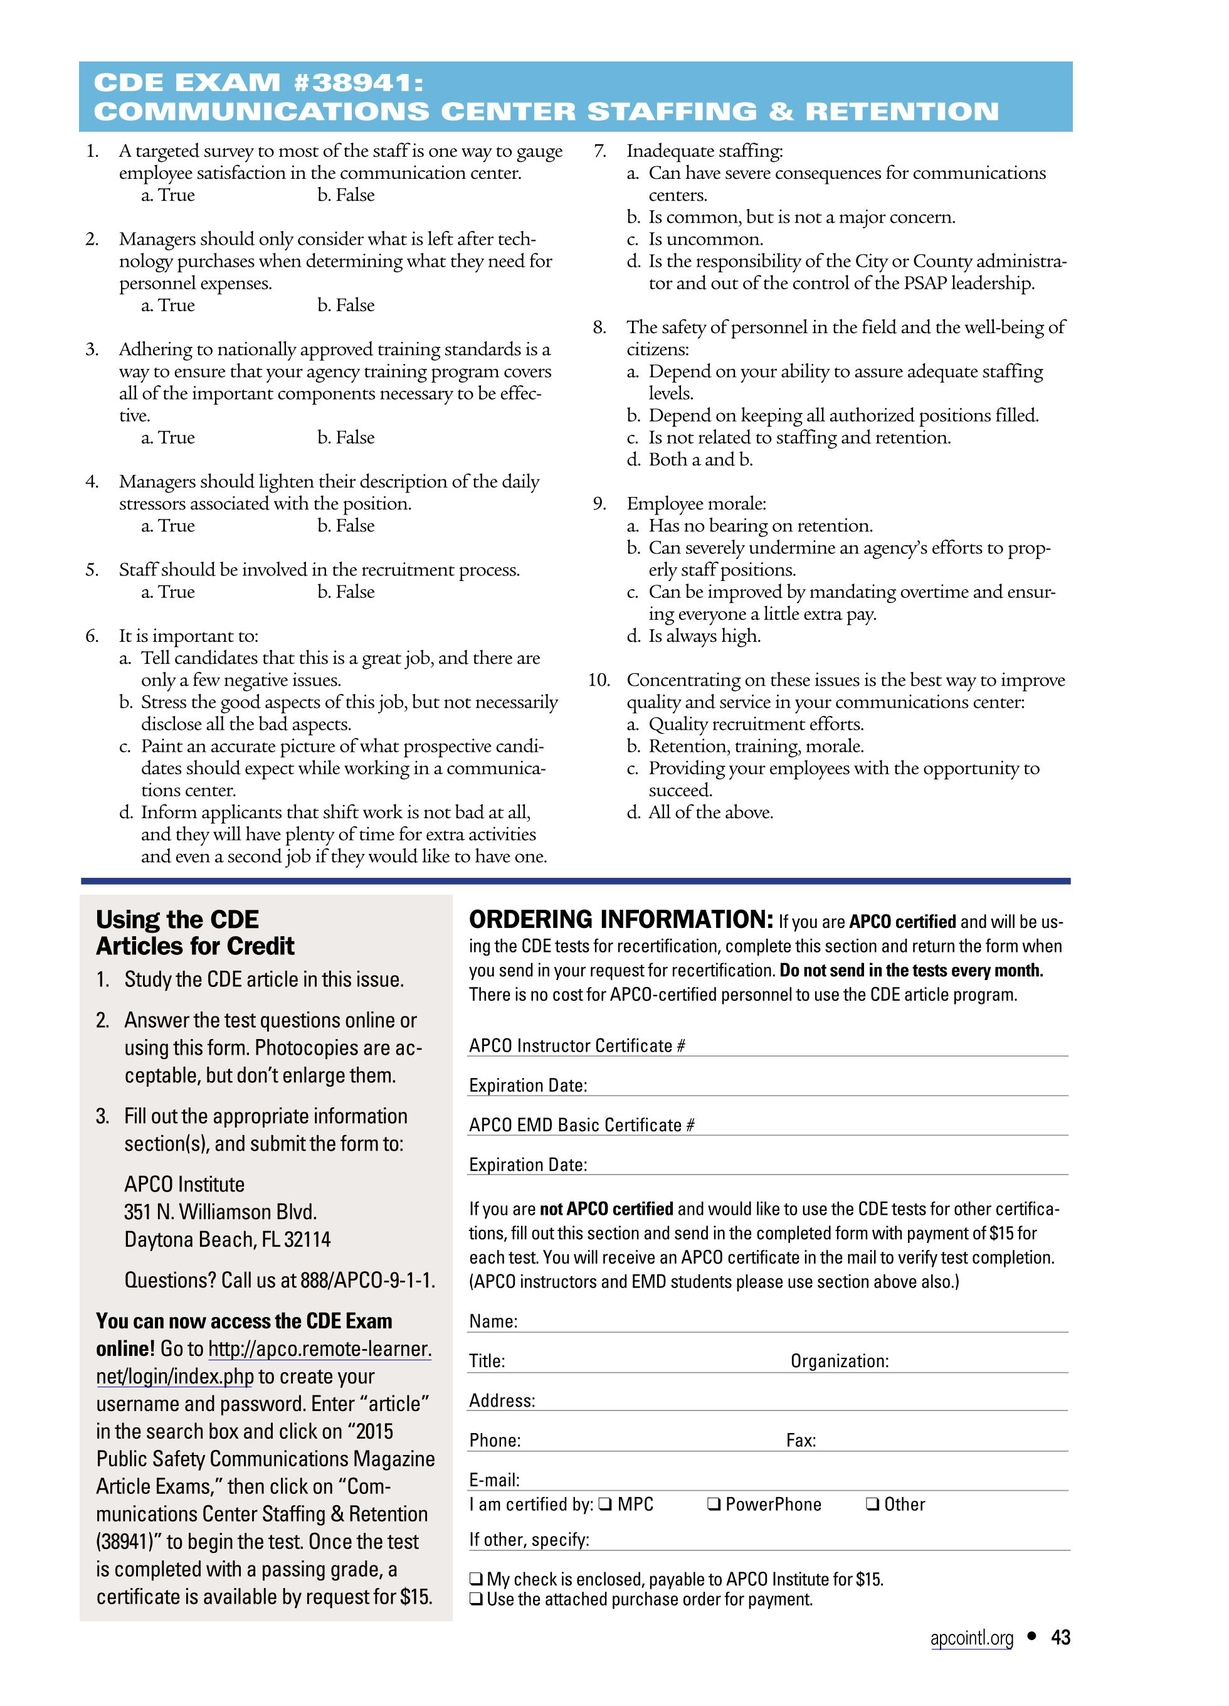 Public Safety Communications March 2015